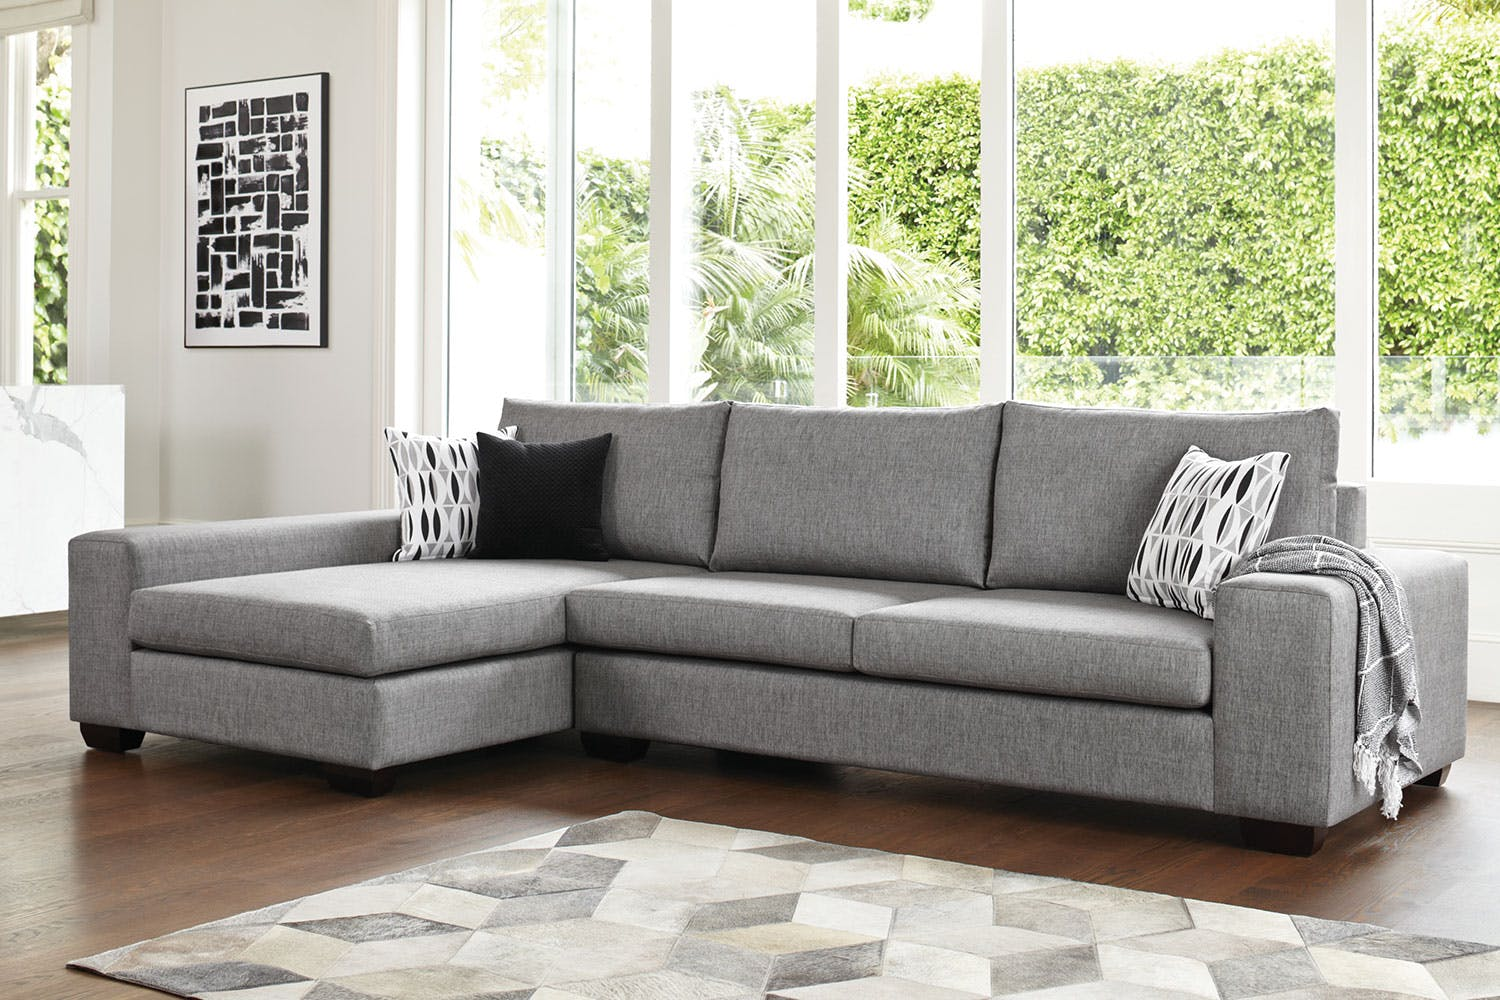 3 seater sofa with chaise nz for 5 seater sofa with chaise